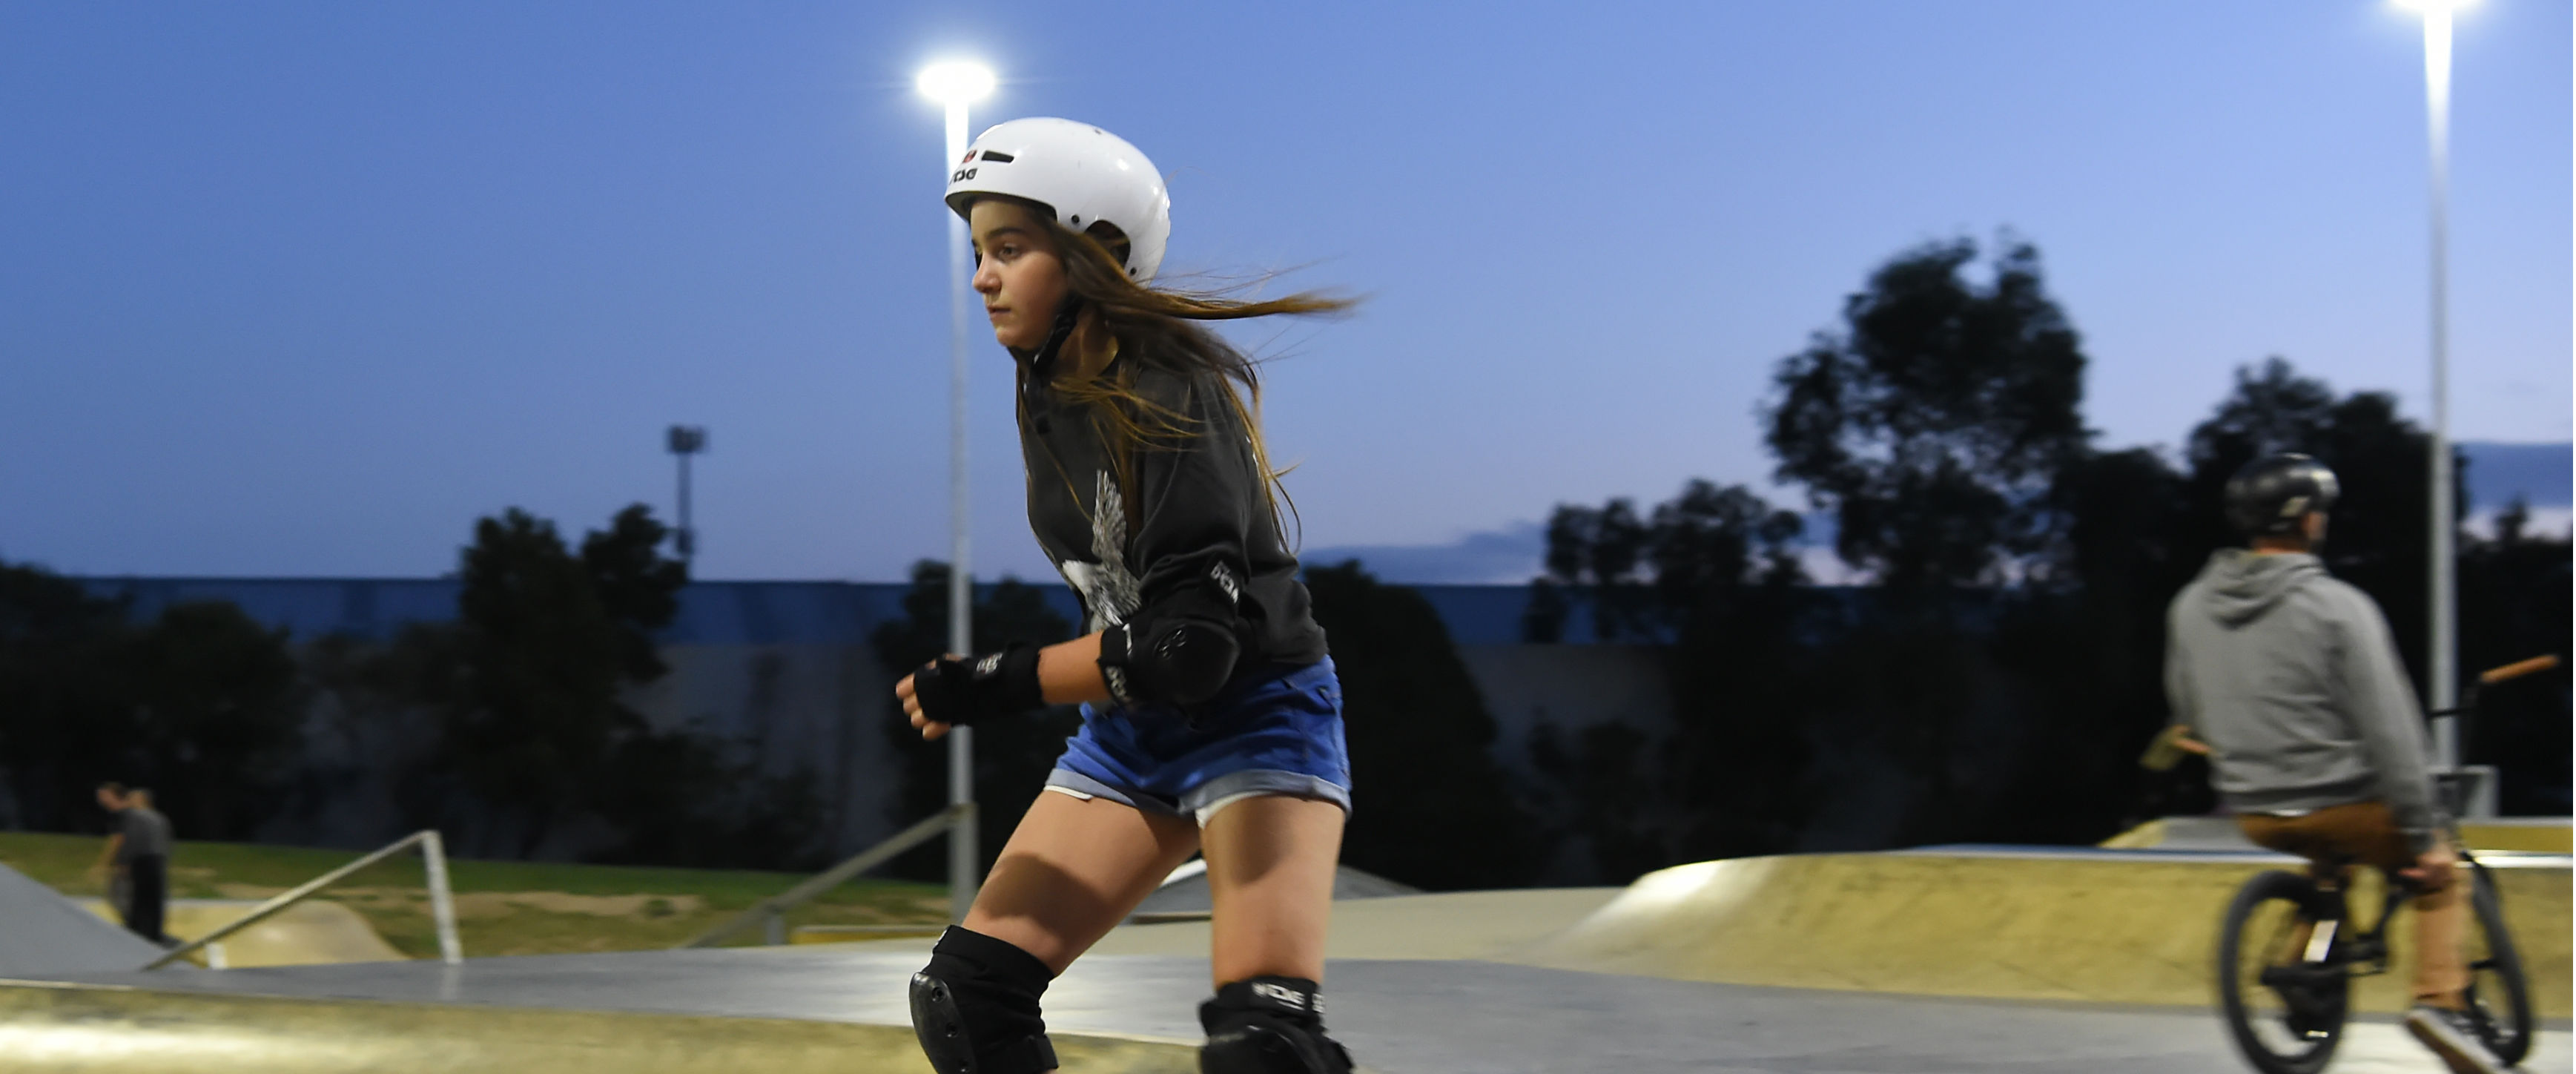 Young girl rollerblading at Box Hill Skate Park